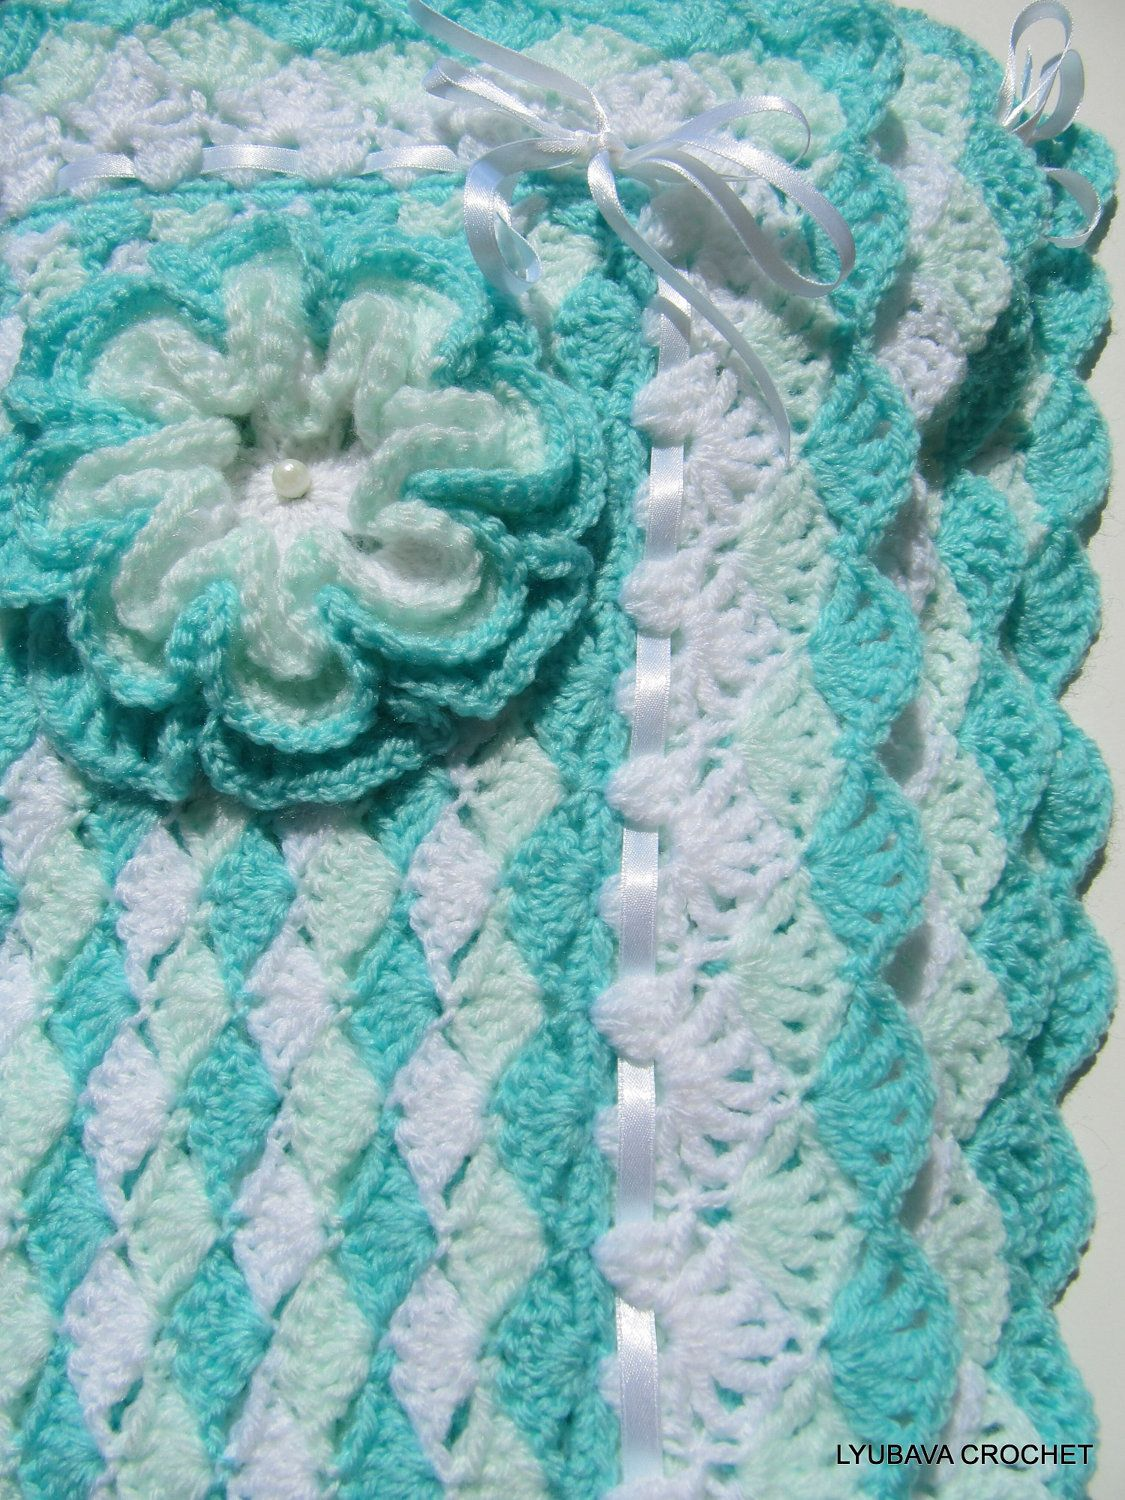 Crochet baby afghans to download crochet tutorial pattern baby blanket crochet tutorial pattern turquoise sea shell pdf file crochet baby blanket baby afghan lyubava crochet pattern number 42 just got this bankloansurffo Choice Image